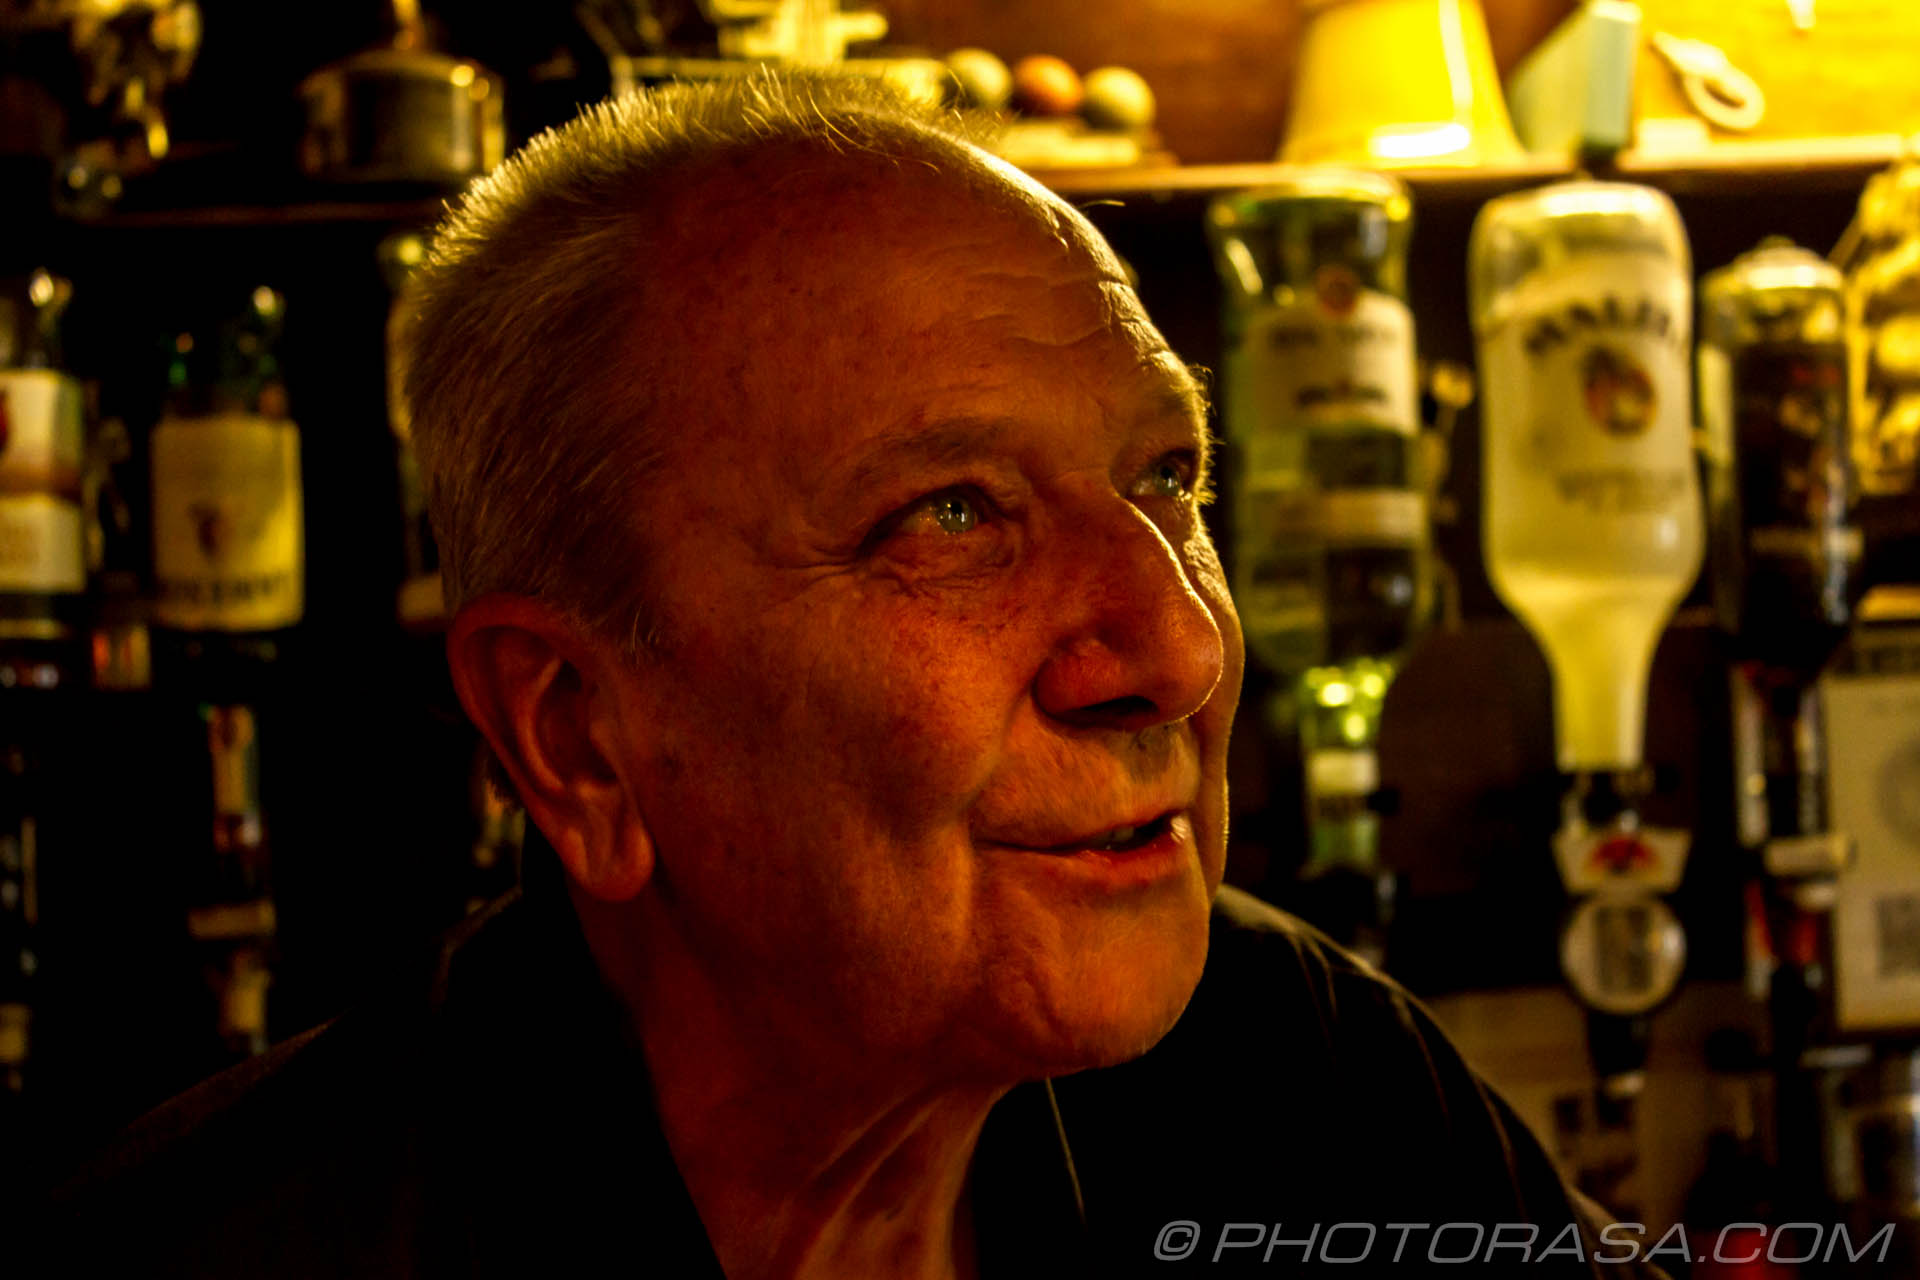 http://photorasa.com/lyme-regis/pete-the-pub-landlord/